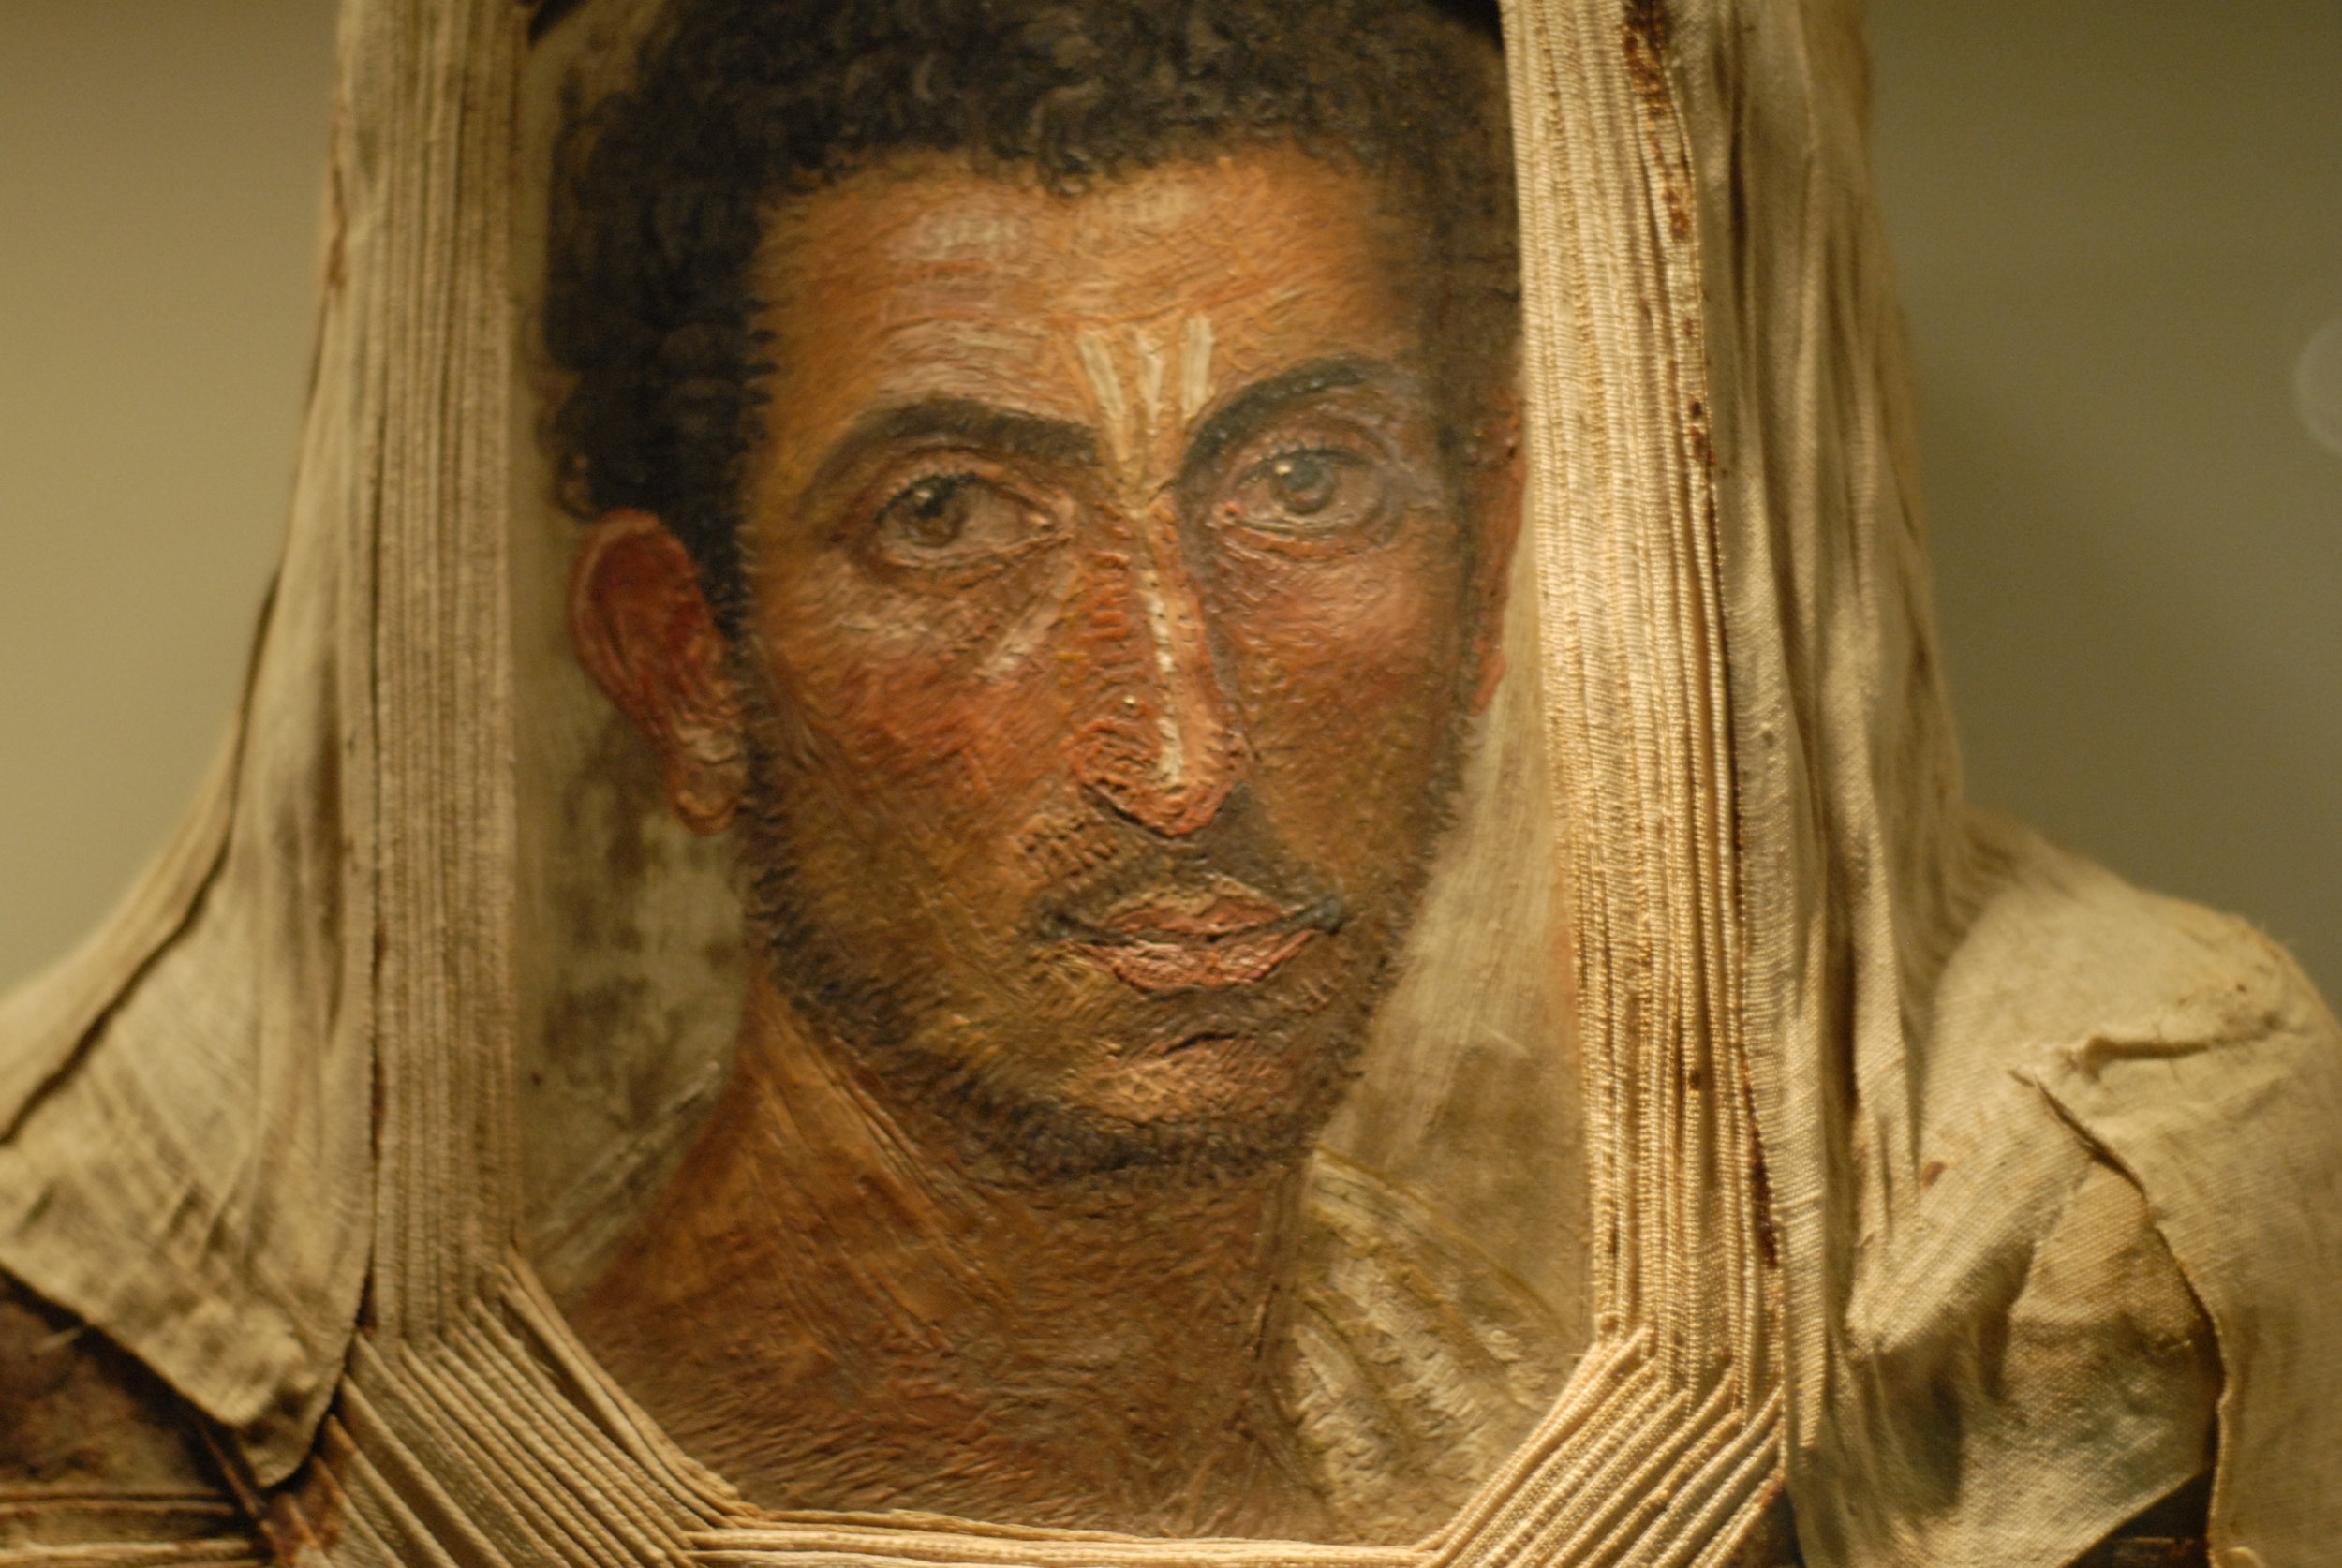 Mummy portrait of bearded man, encaustic on wood, circa 2nd century AD, Royal Museum of Scotland